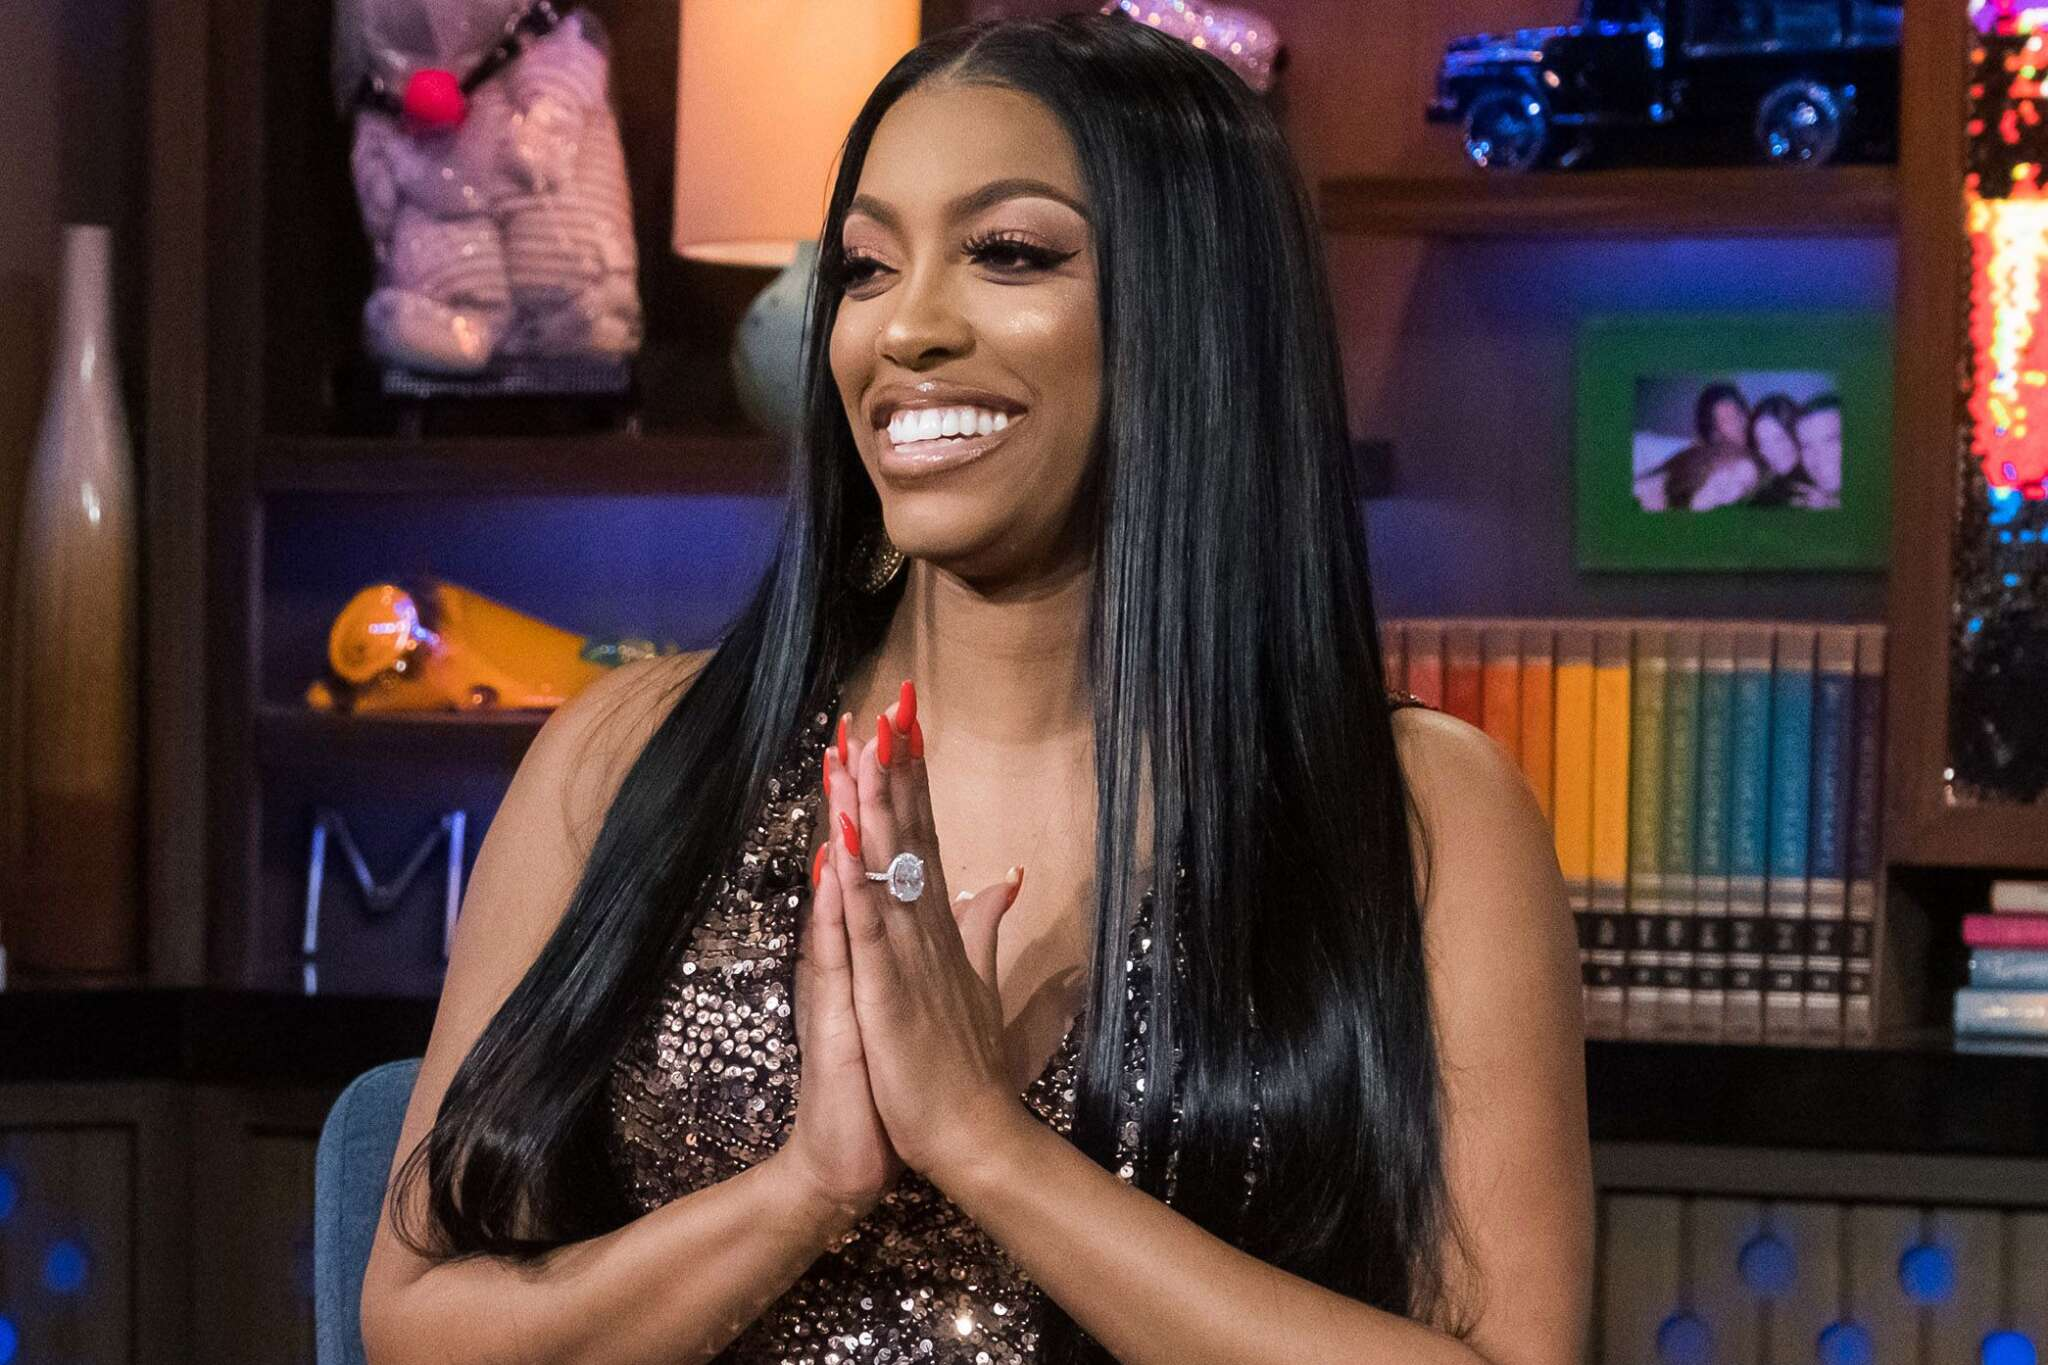 Porsha Williams' Funny Video In Which She Mentions Toni Braxton Has Fans In Awe